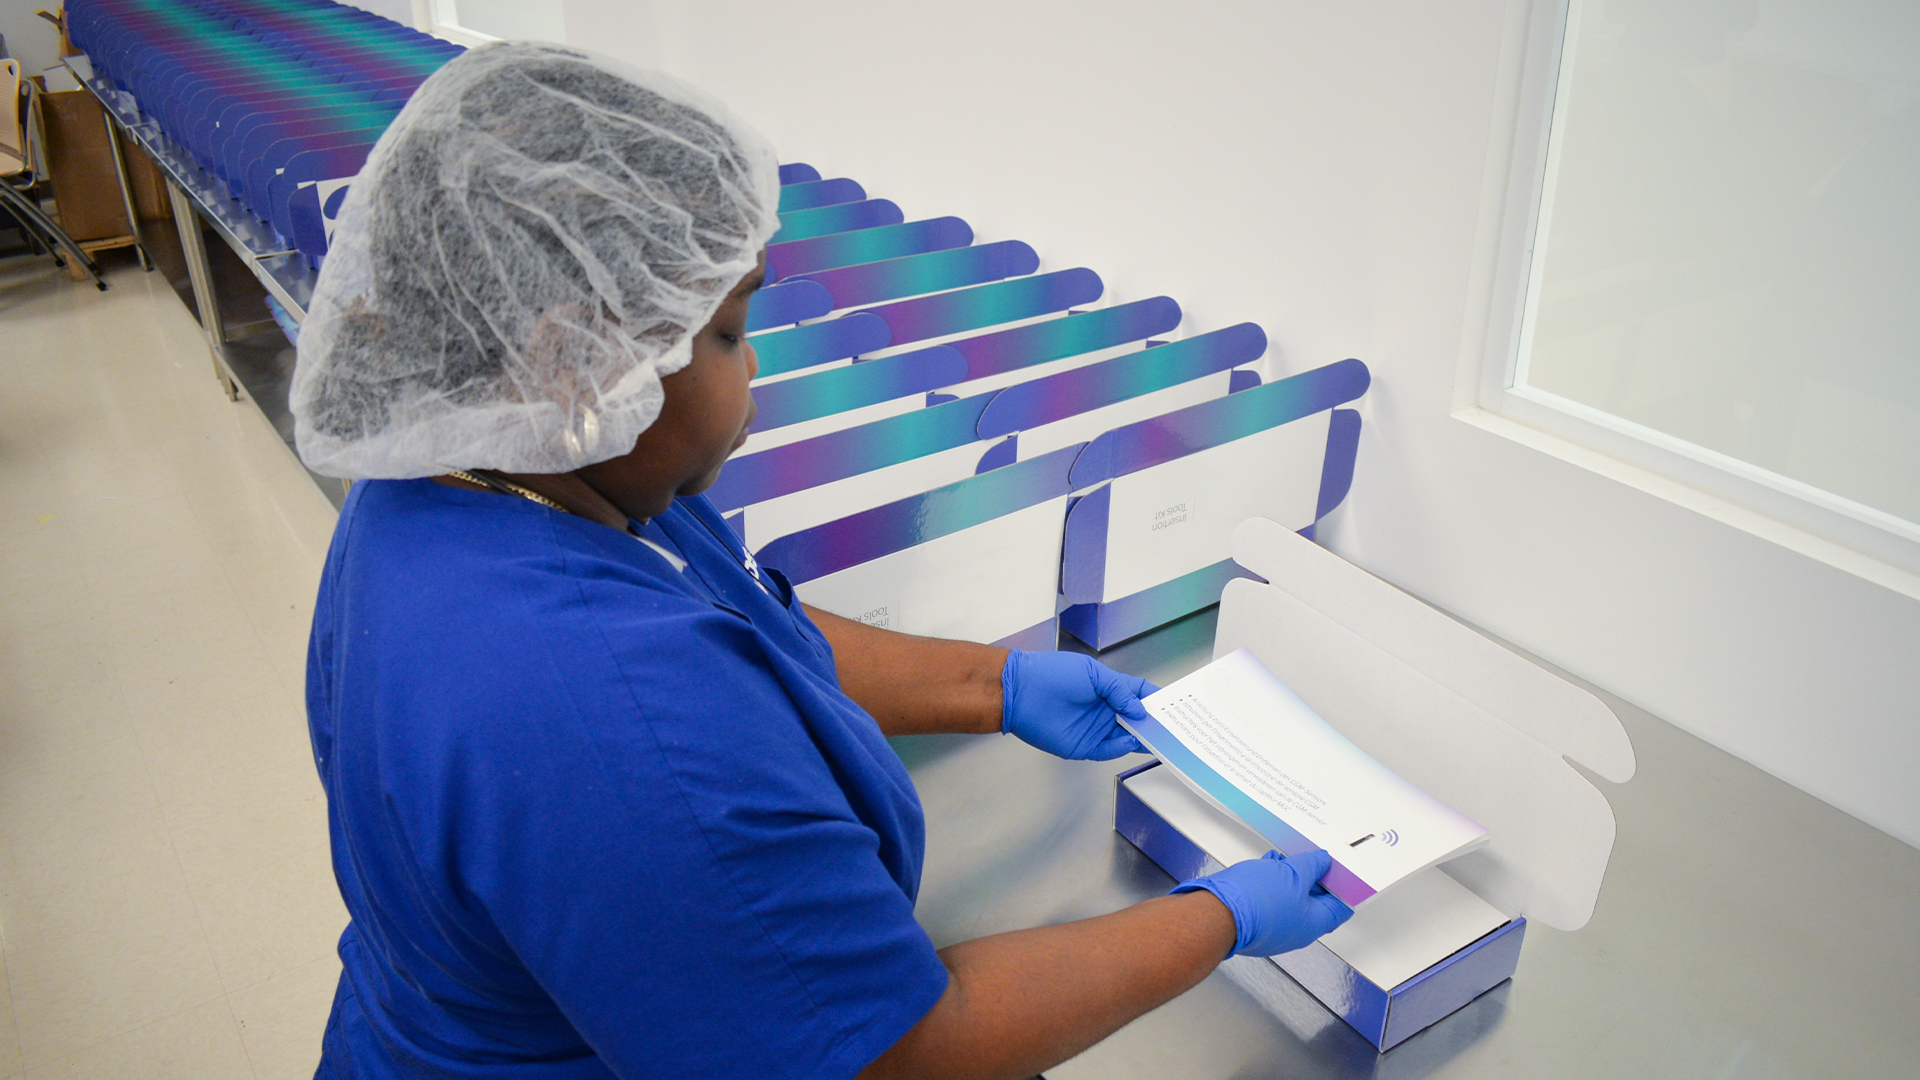 WDSrx Production Technician assembles last medical device box from line.